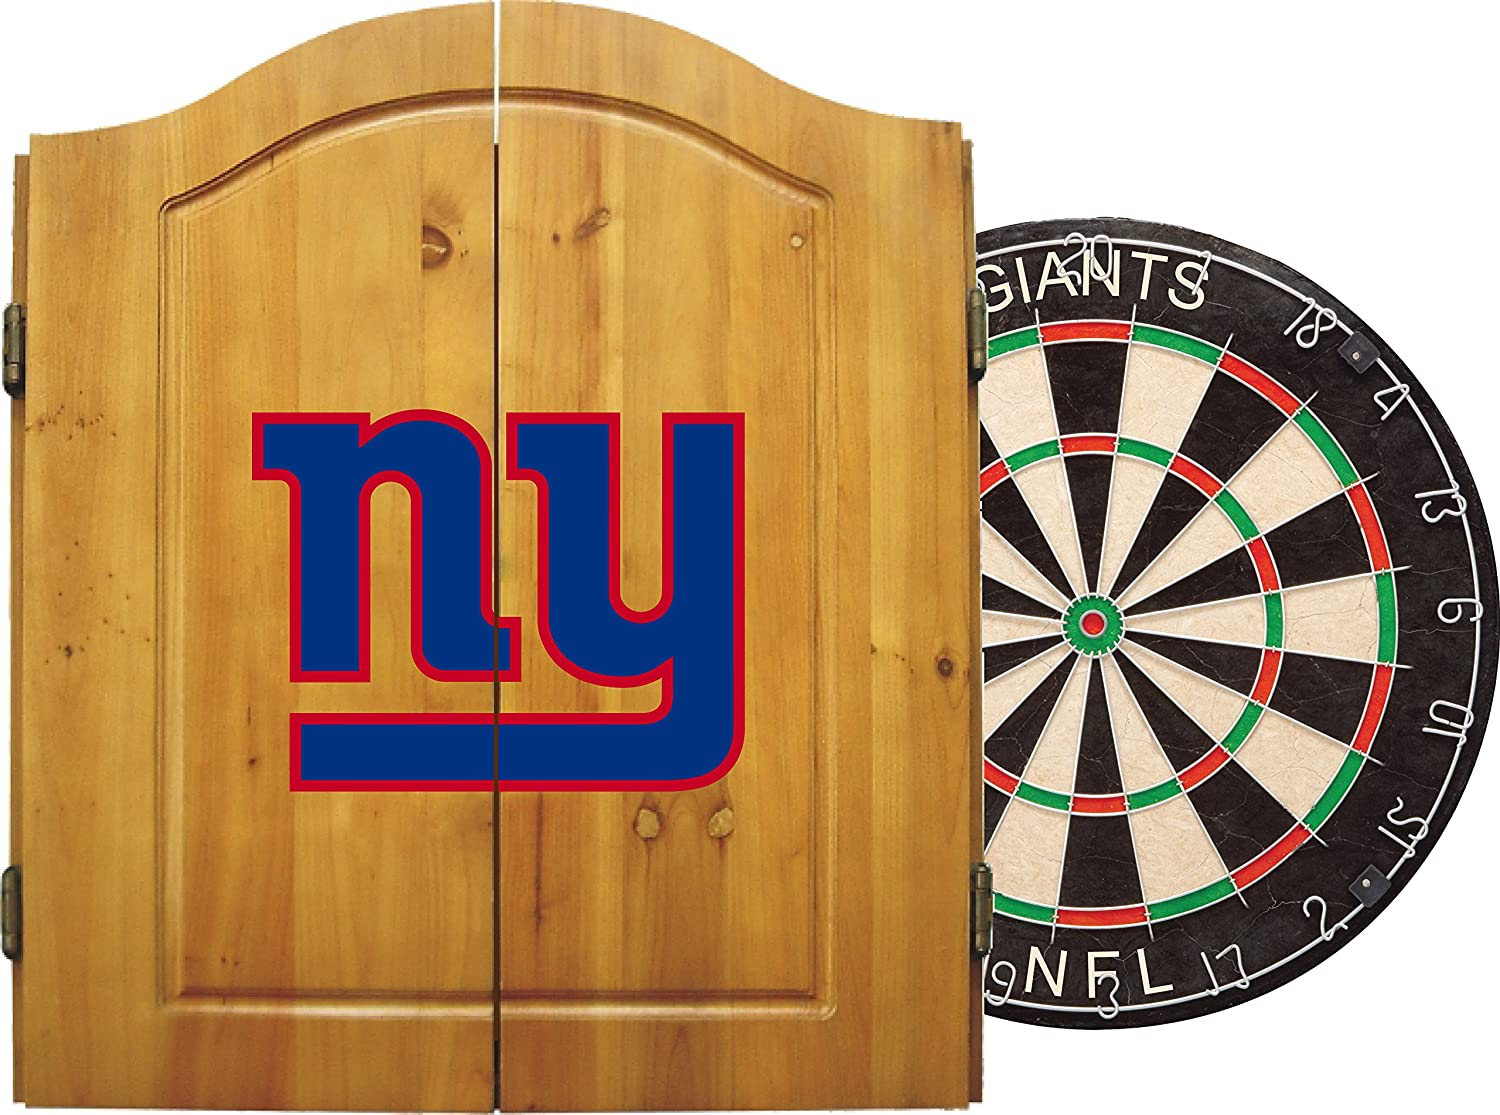 Imperial Officially Licensed NFL Merchandise: Dart Cabinet Set with Steel Tip Bristle Dartboard and Darts, Oakland Raiders 20-1010